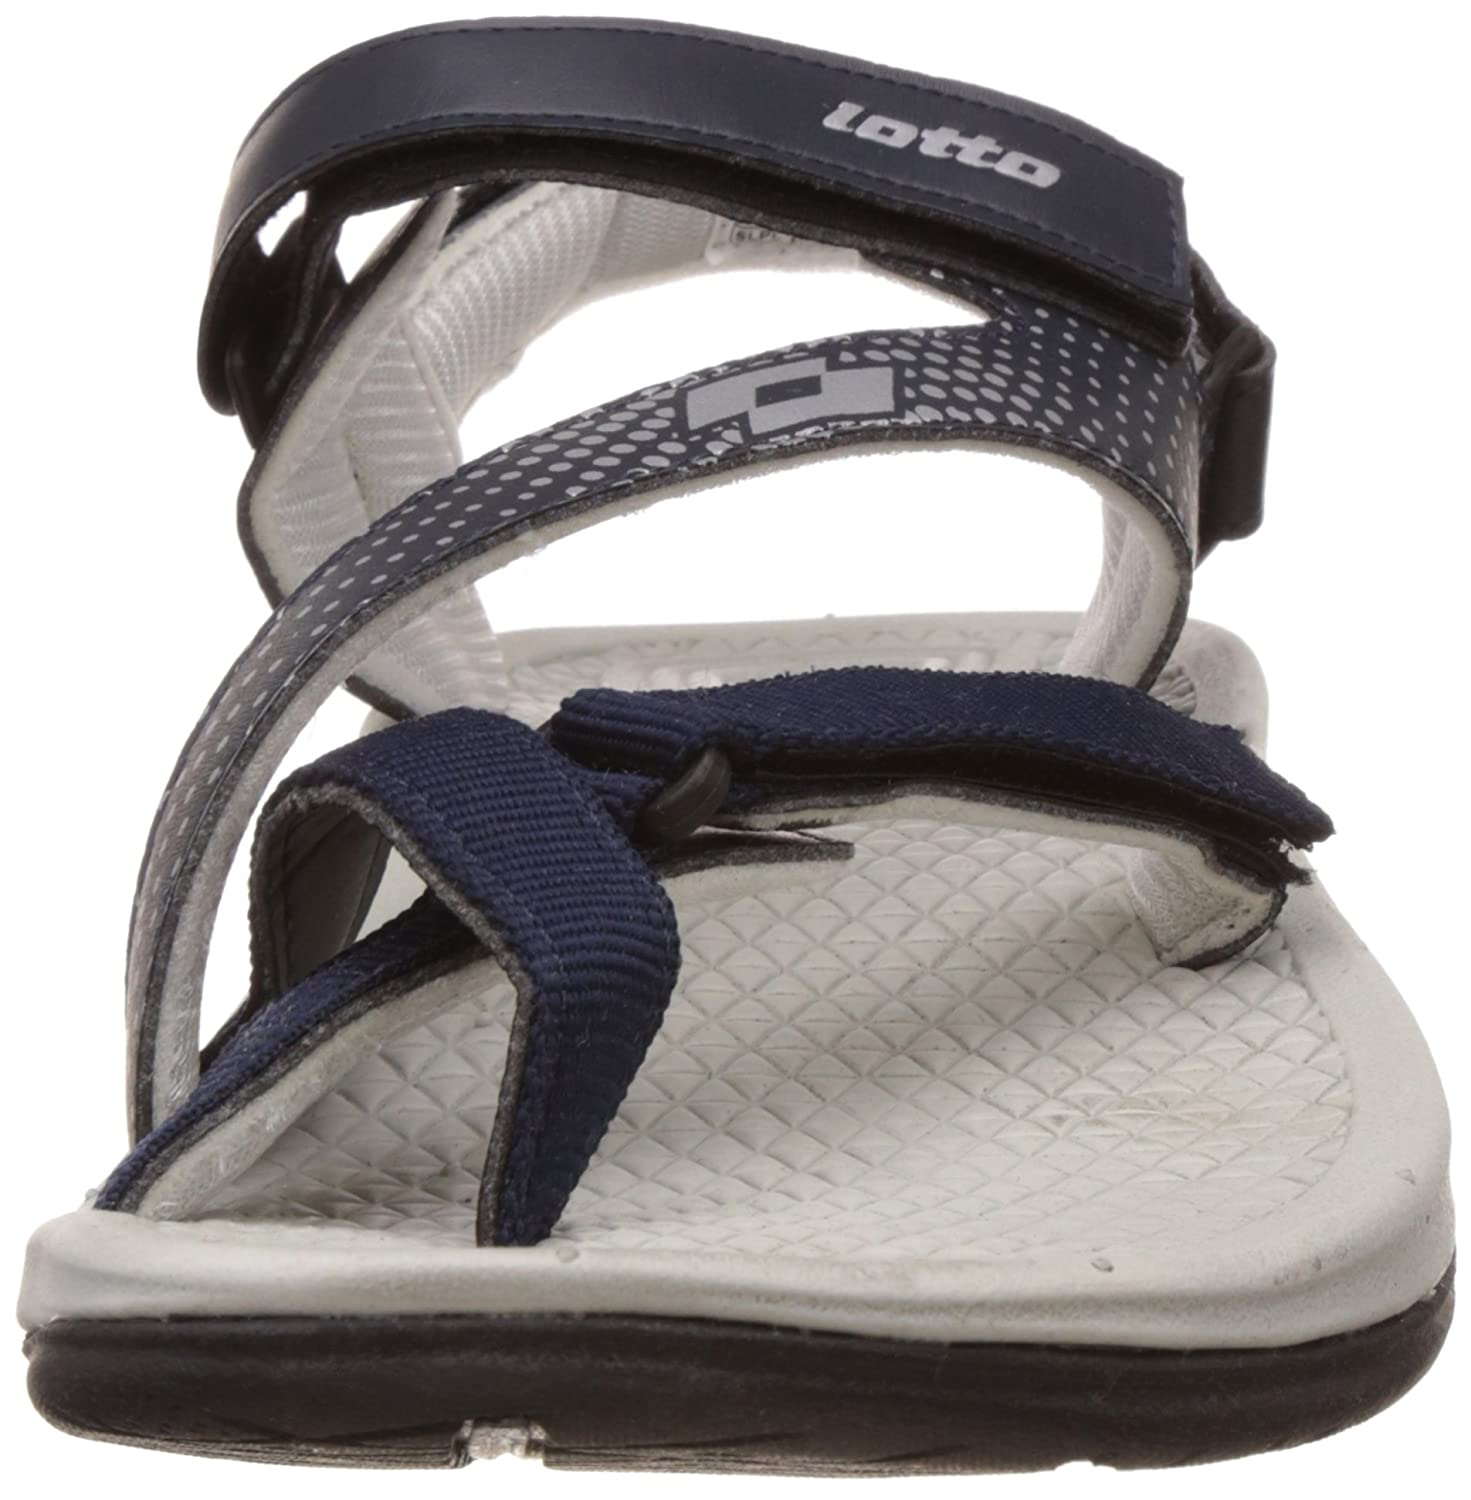 aa512e5fb3b57b Lotto Men s Roma III Navy Blue and Silver Sandals and Floaters - 9 UK India  (43 EU)  Buy Online at Low Prices in India - Amazon.in